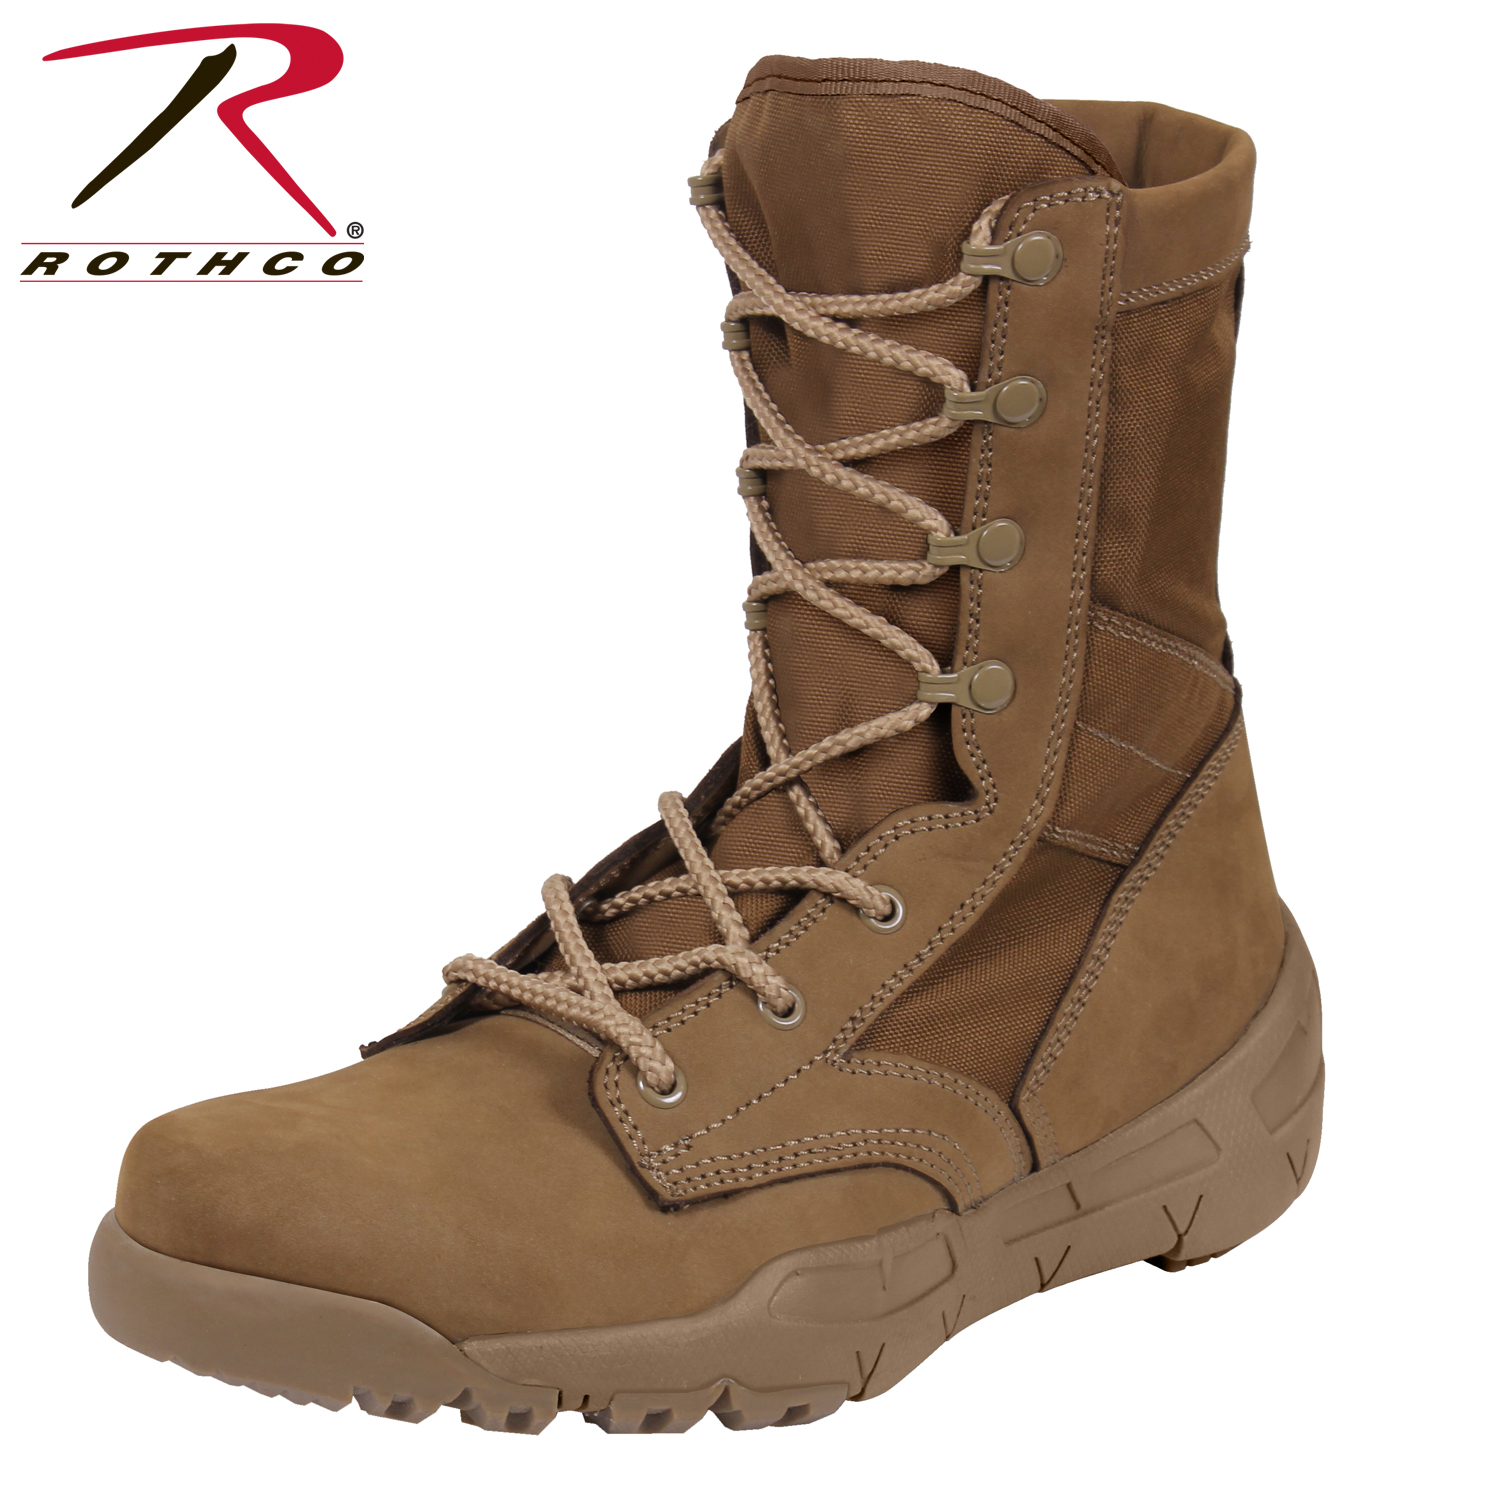 Rothco V Max Lightweight Tactical Boot